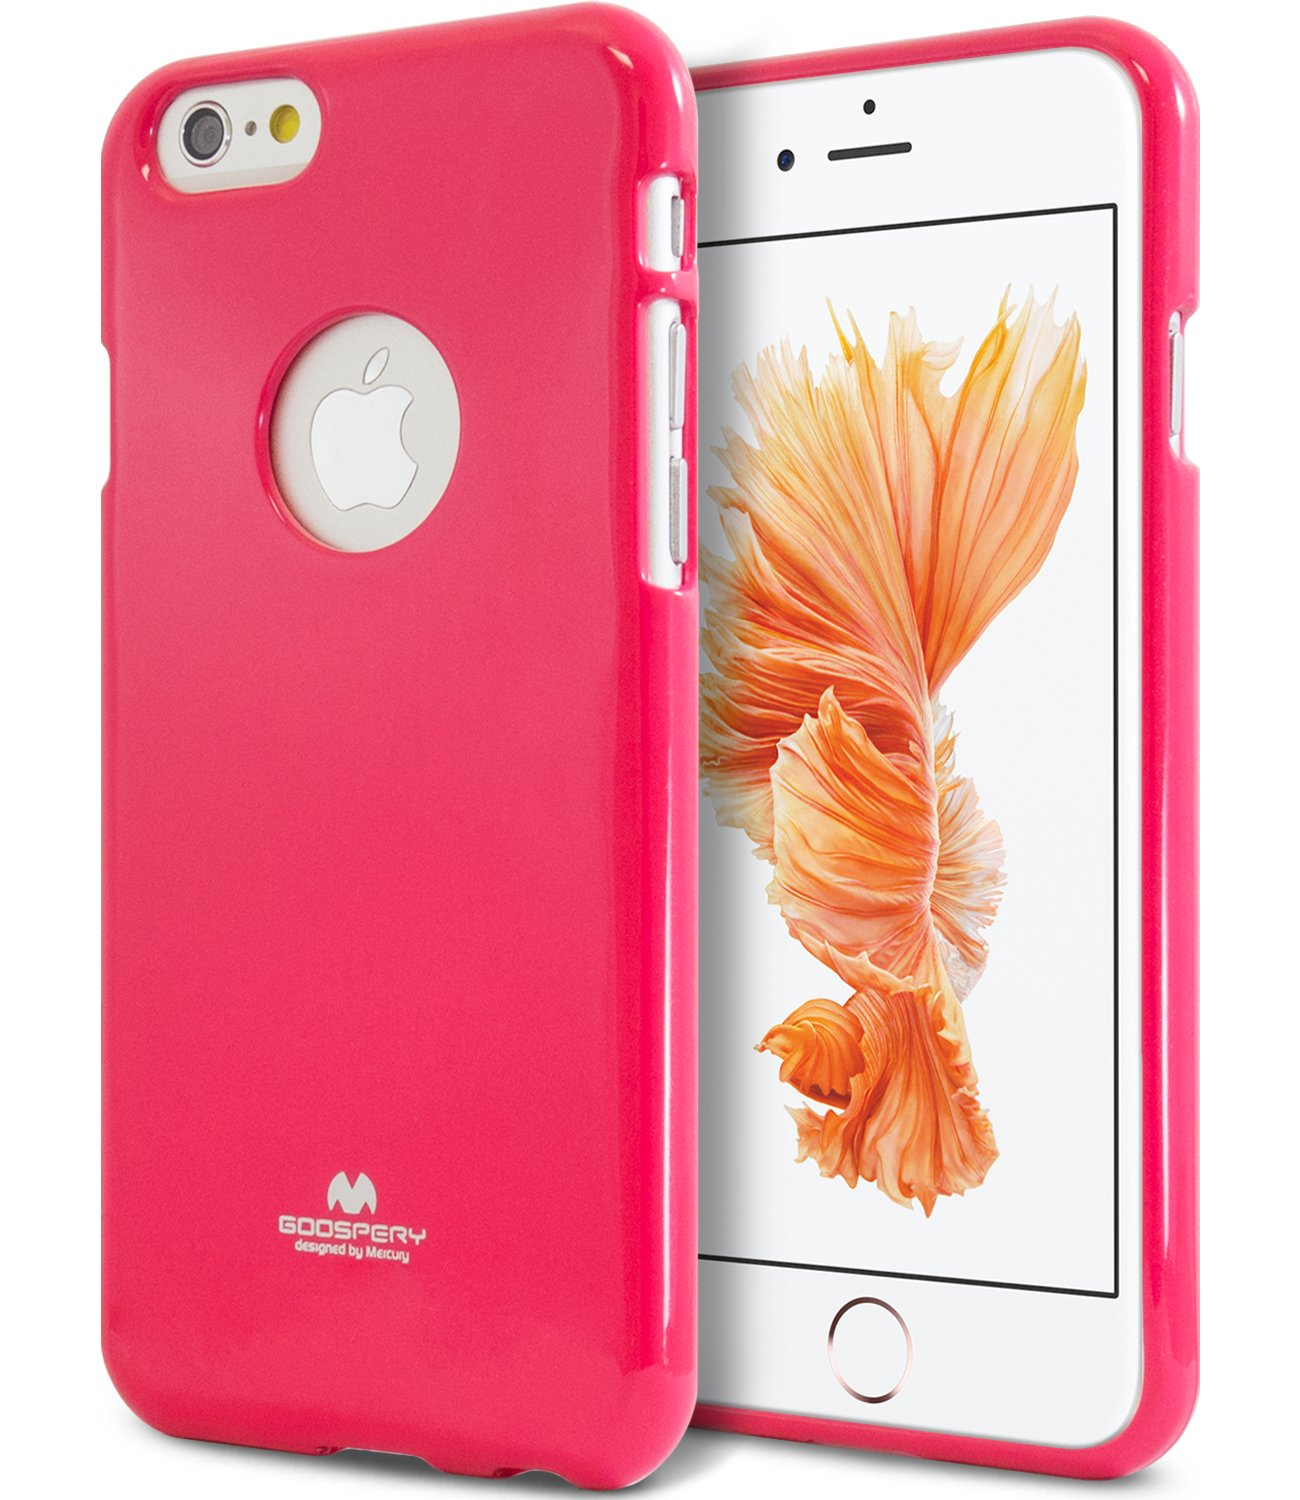 100% authentic f61da 409a8 iPhone 6 Case, iPhone 6s Case, [Thin Slim] GOOSPERY [Flexible] Color Pearl  Jelly Rubber TPU Case [Lightweight] Bumper Cover for Apple iPhone 6s/6 (HOT  ...